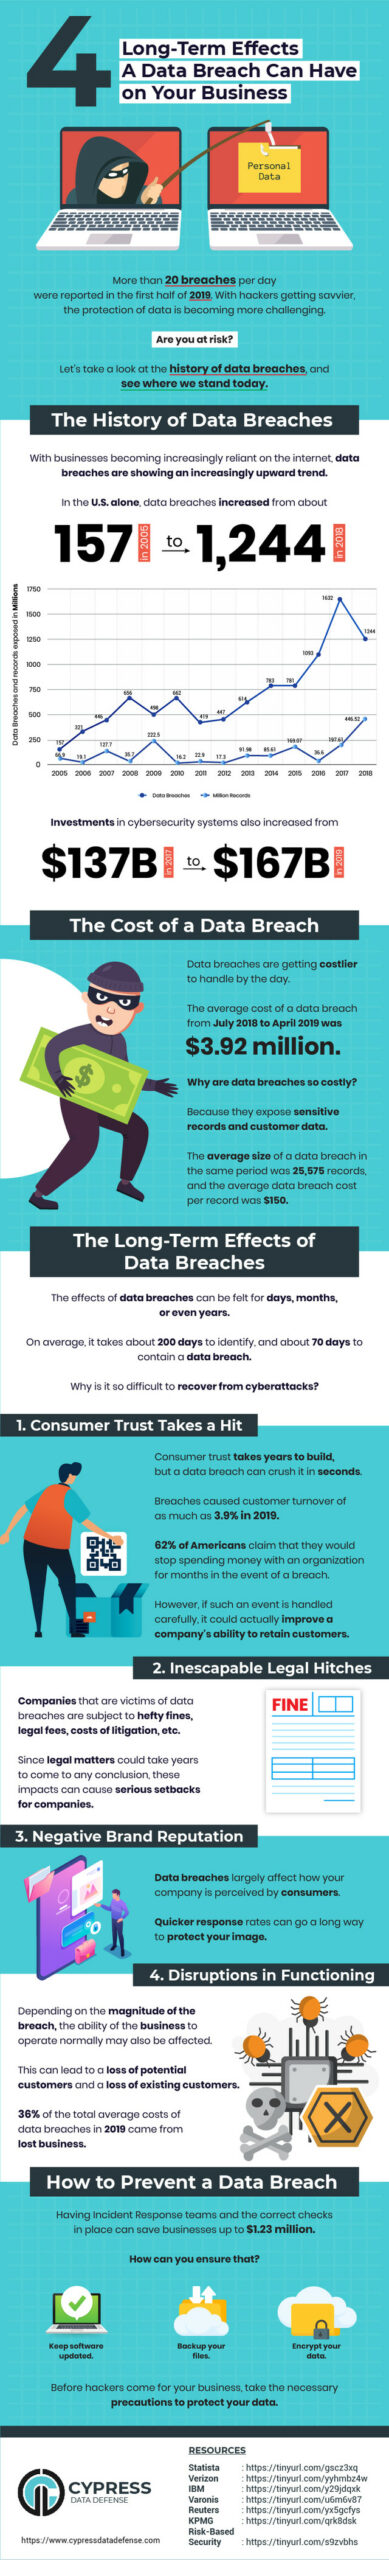 long term effects of data breach